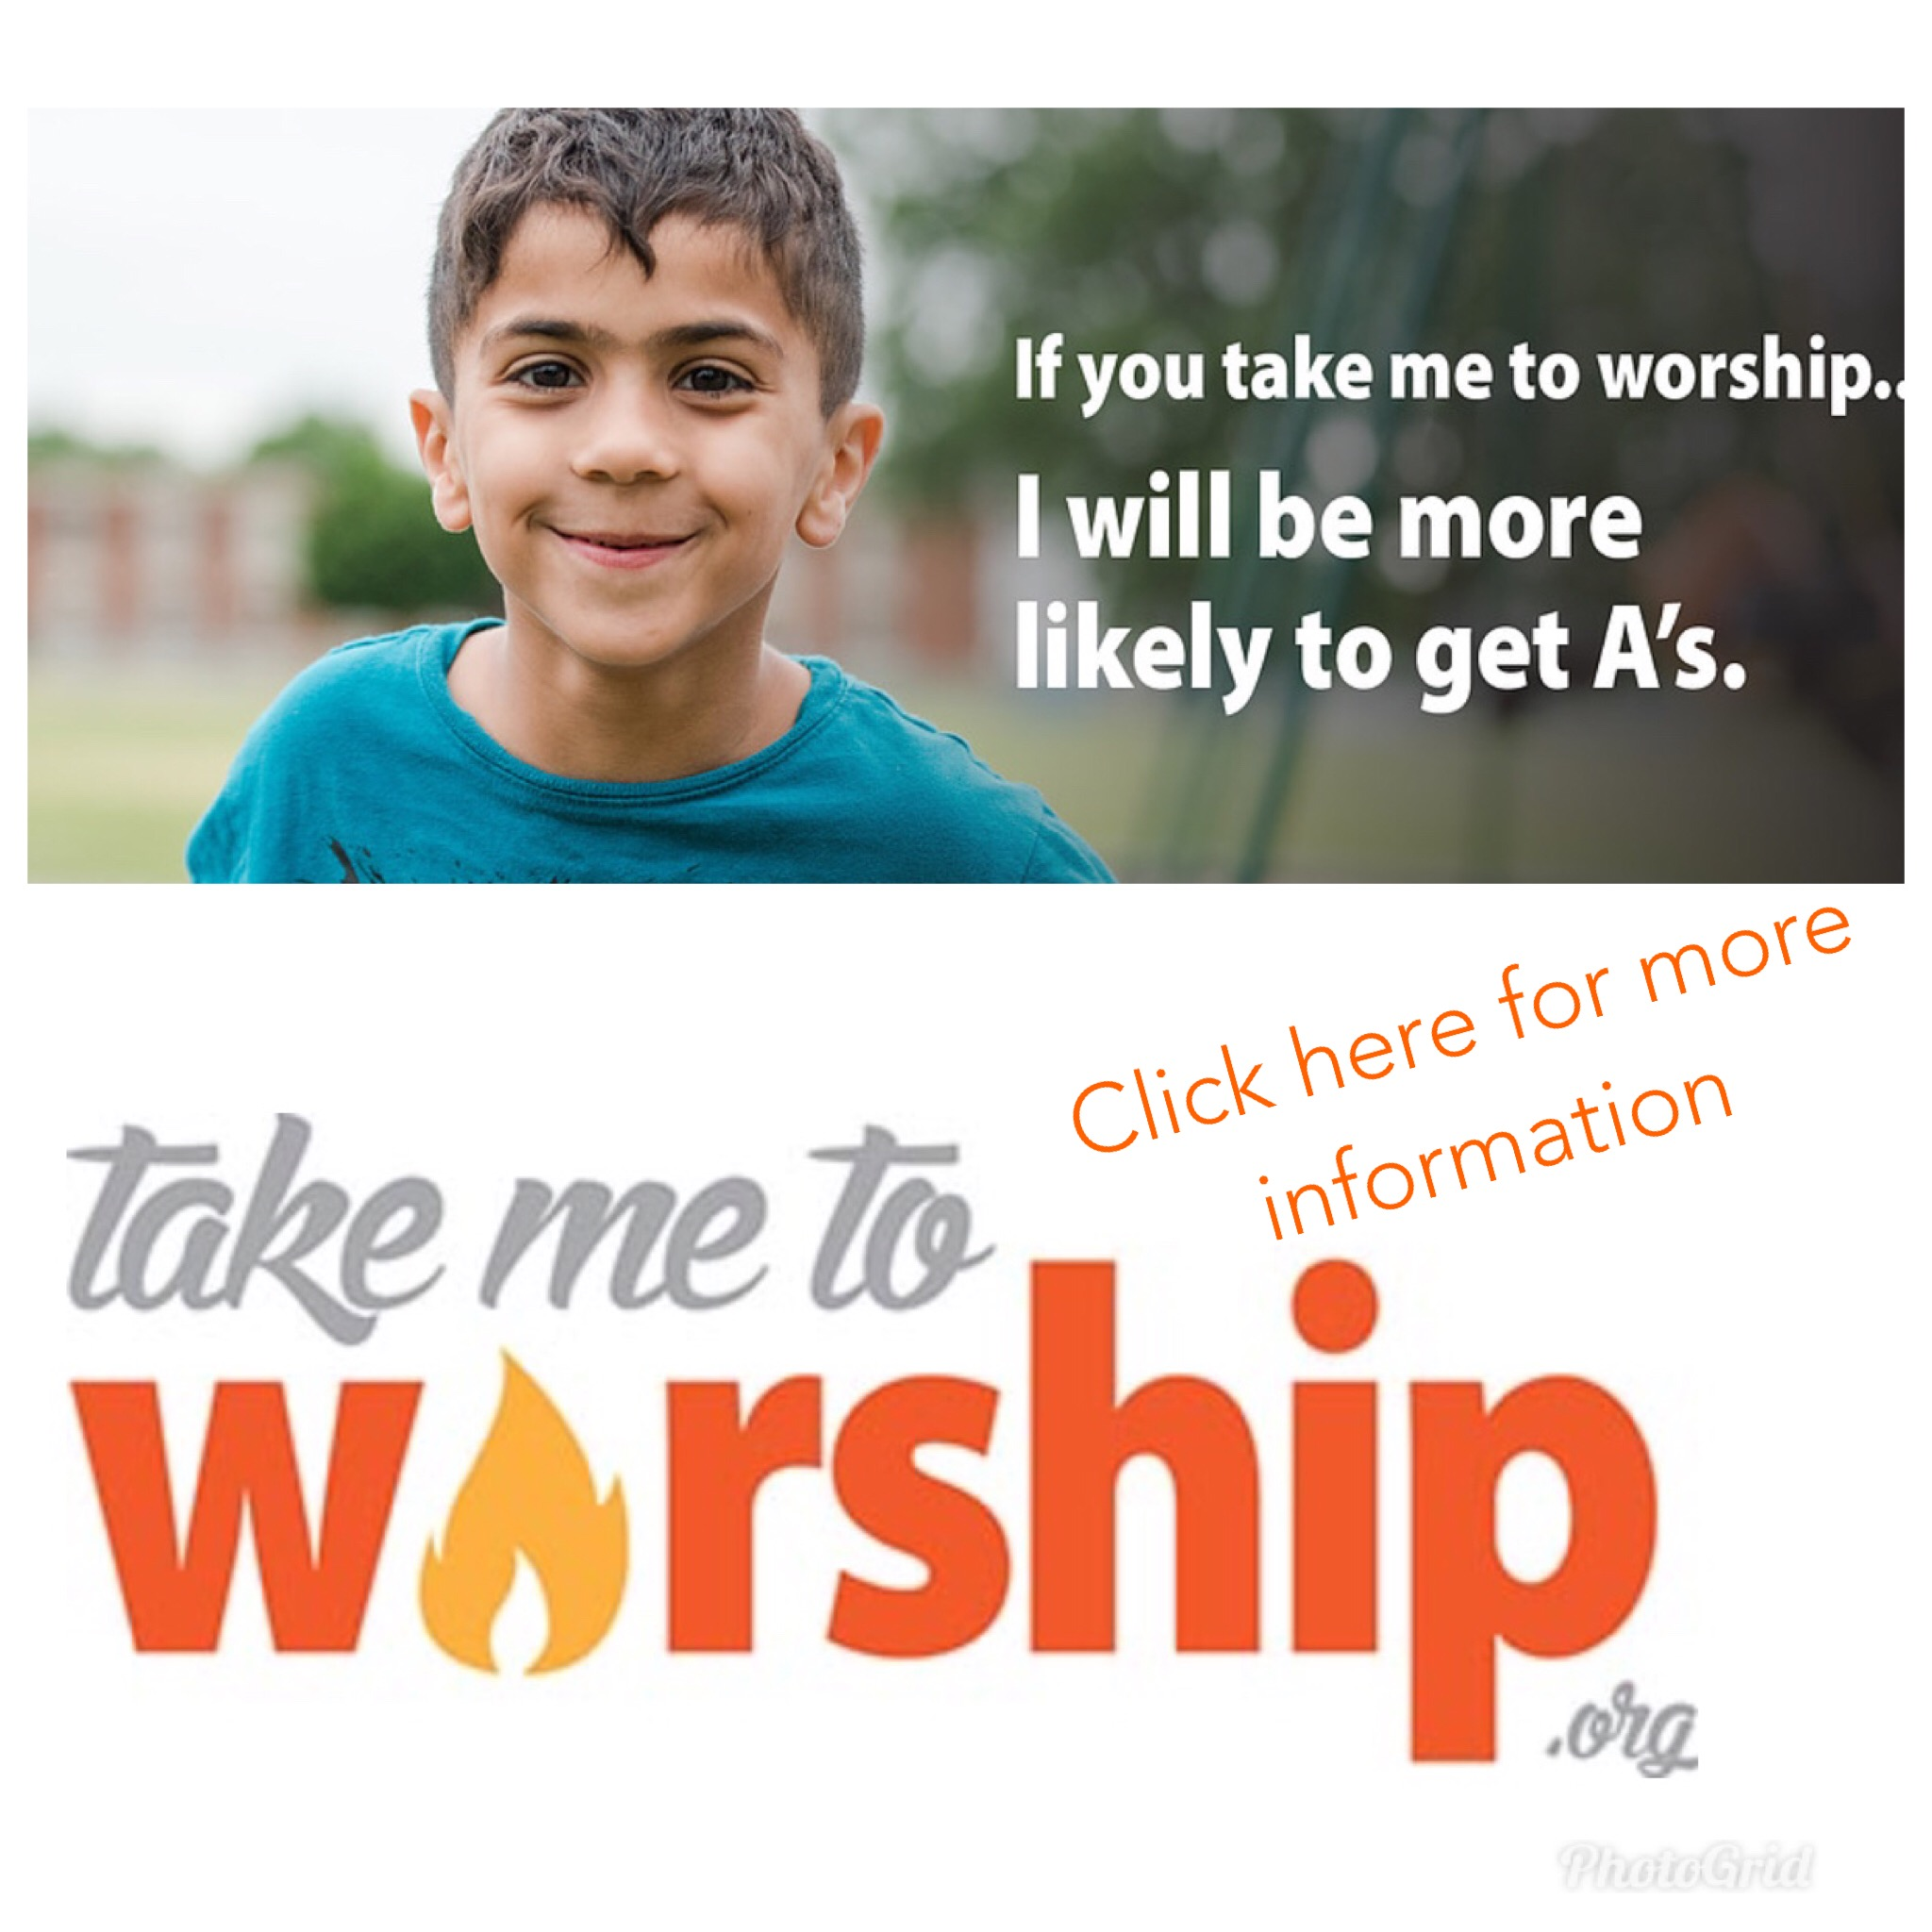 Take Me to Worship